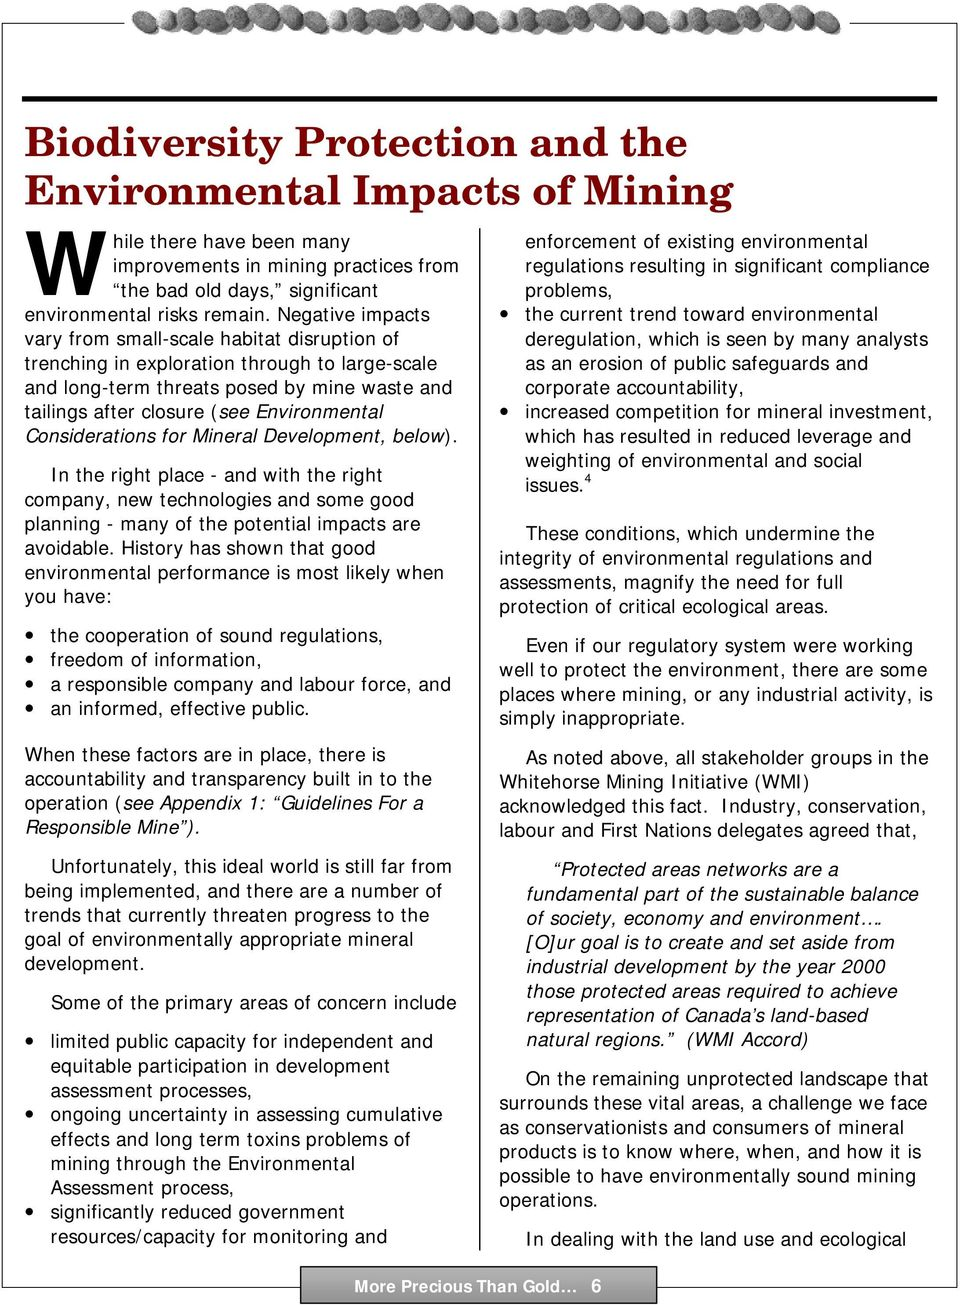 Considerations for Mineral Development, below). In the right place - and with the right company, new technologies and some good planning - many of the potential impacts are avoidable.